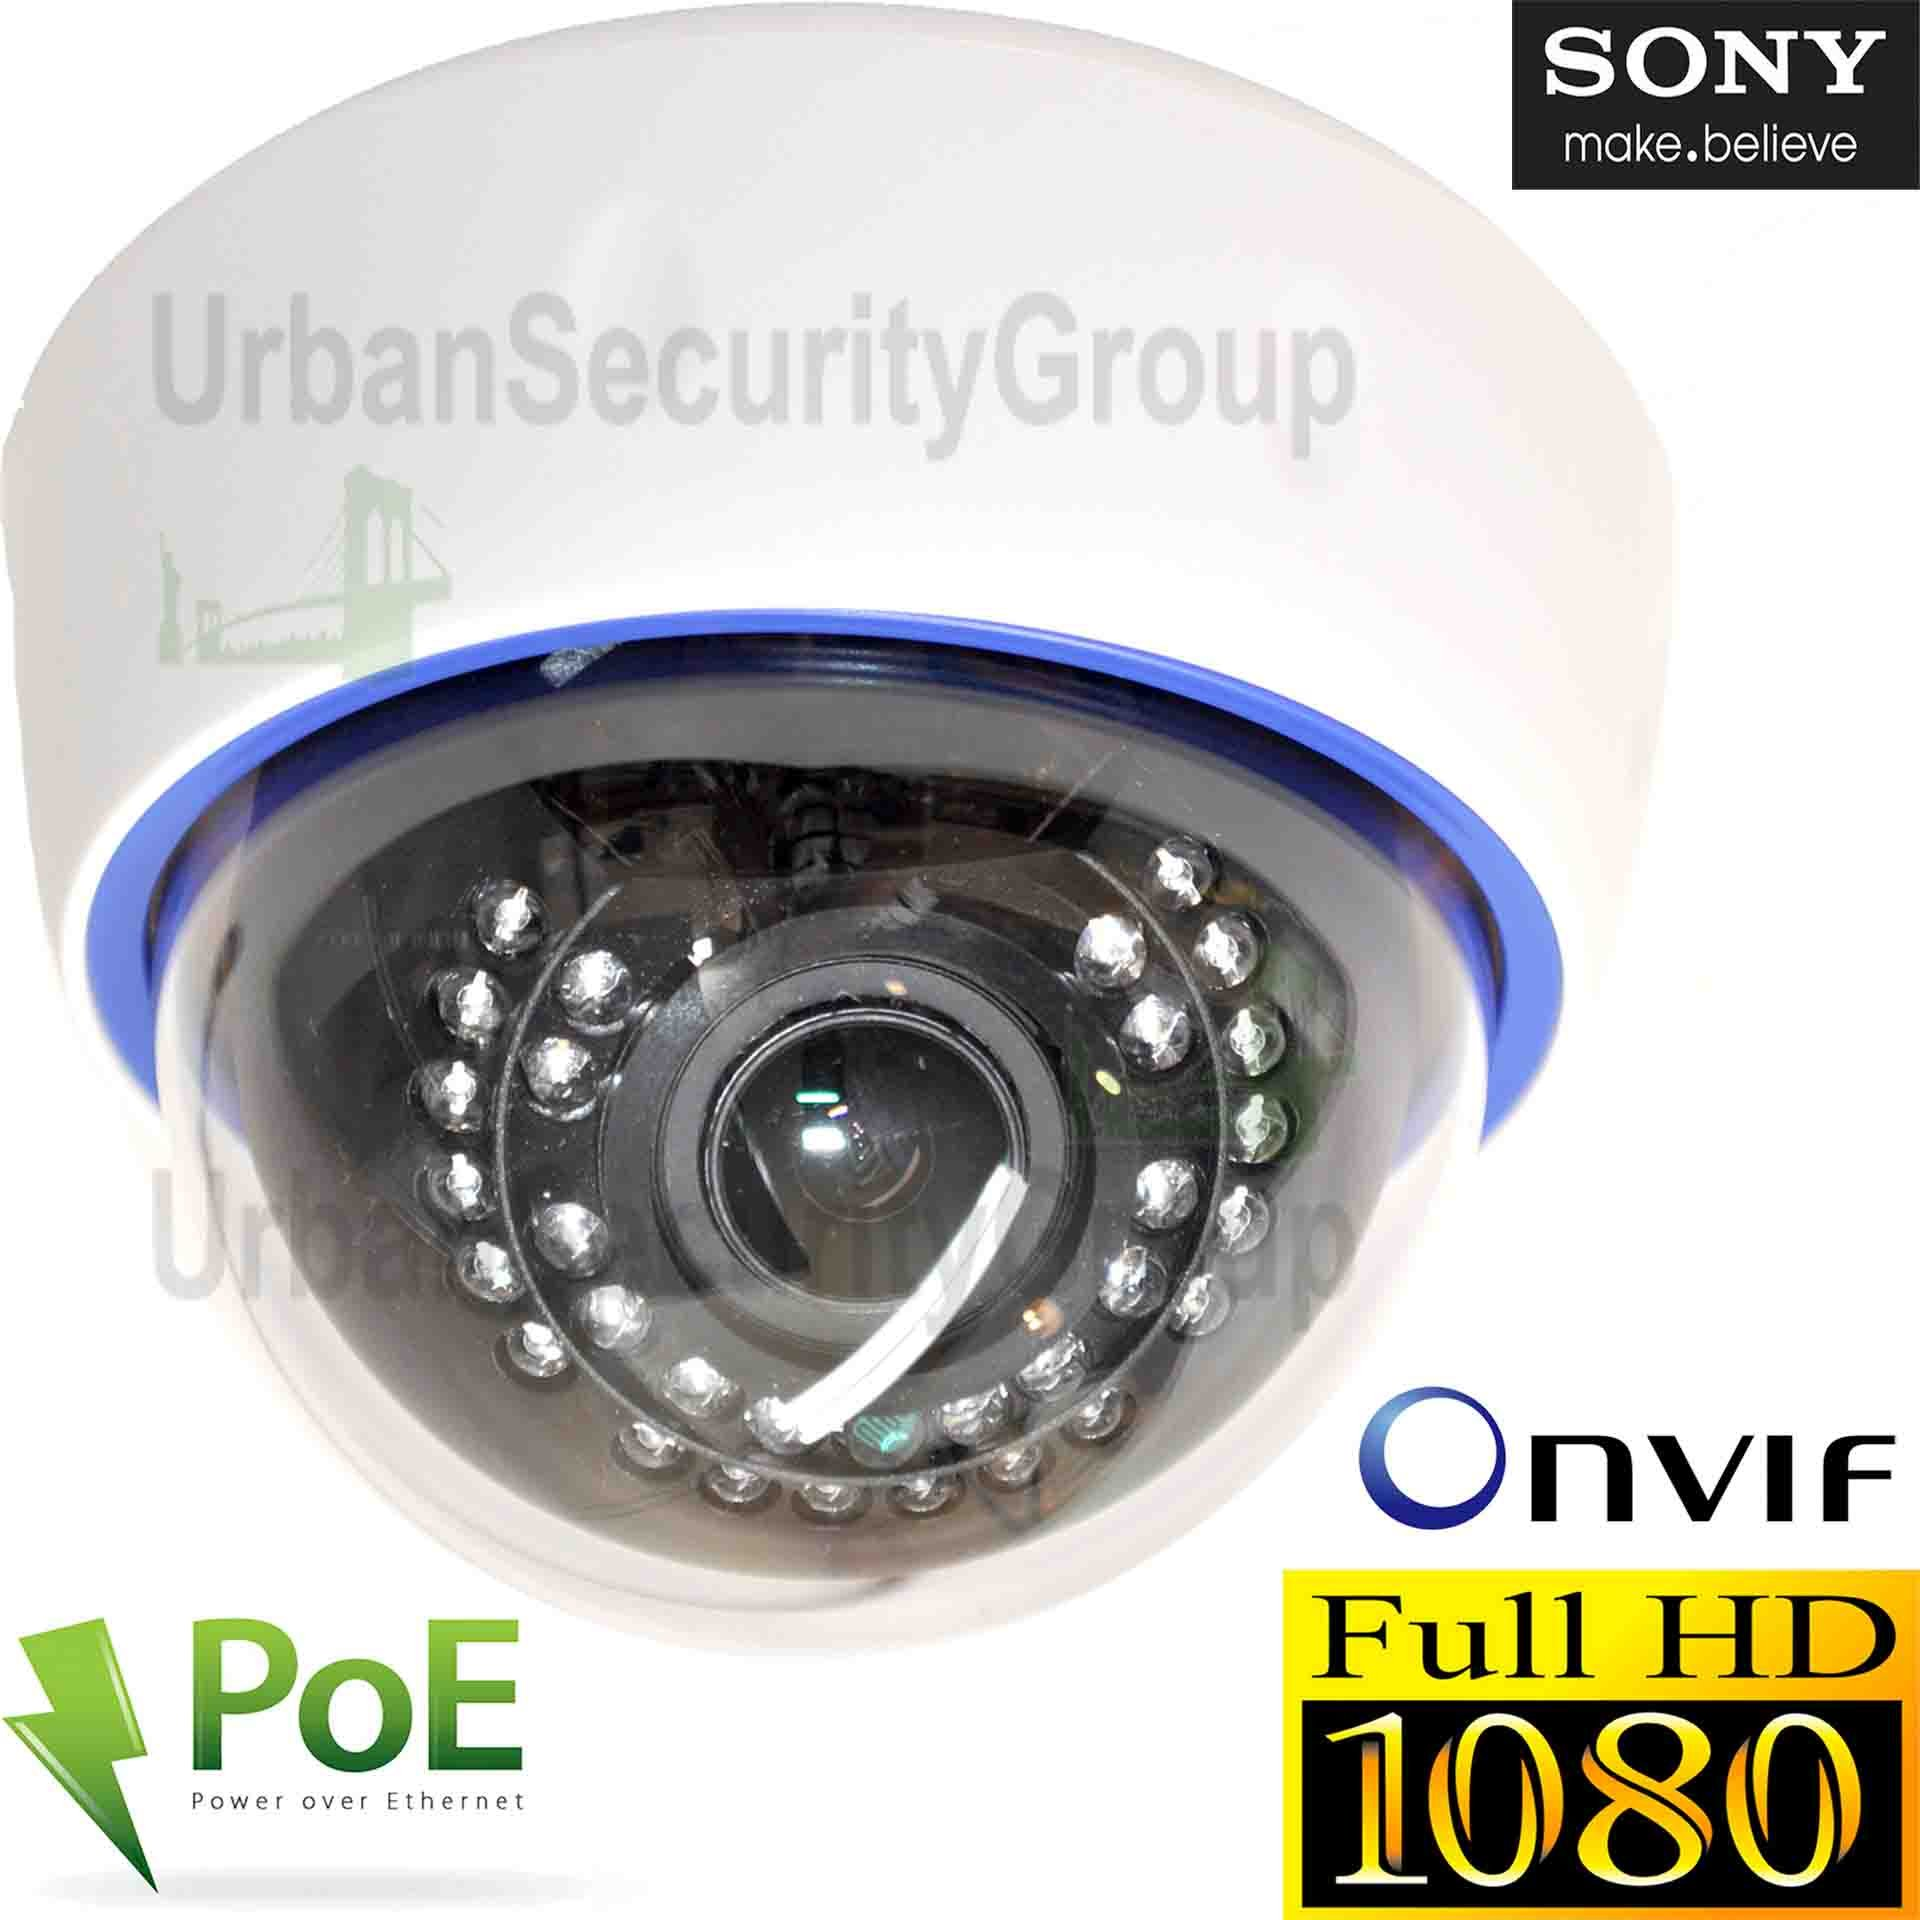 USG 2MP 1080P IP PoE Dome Network Security Camera : 2.8-12mm Varifocal Lens : 30x IR LEDs : IR-Cut, ONVIF, WDR, Motion Detection : Easy To Mount Indoor Plastic Dome Housing